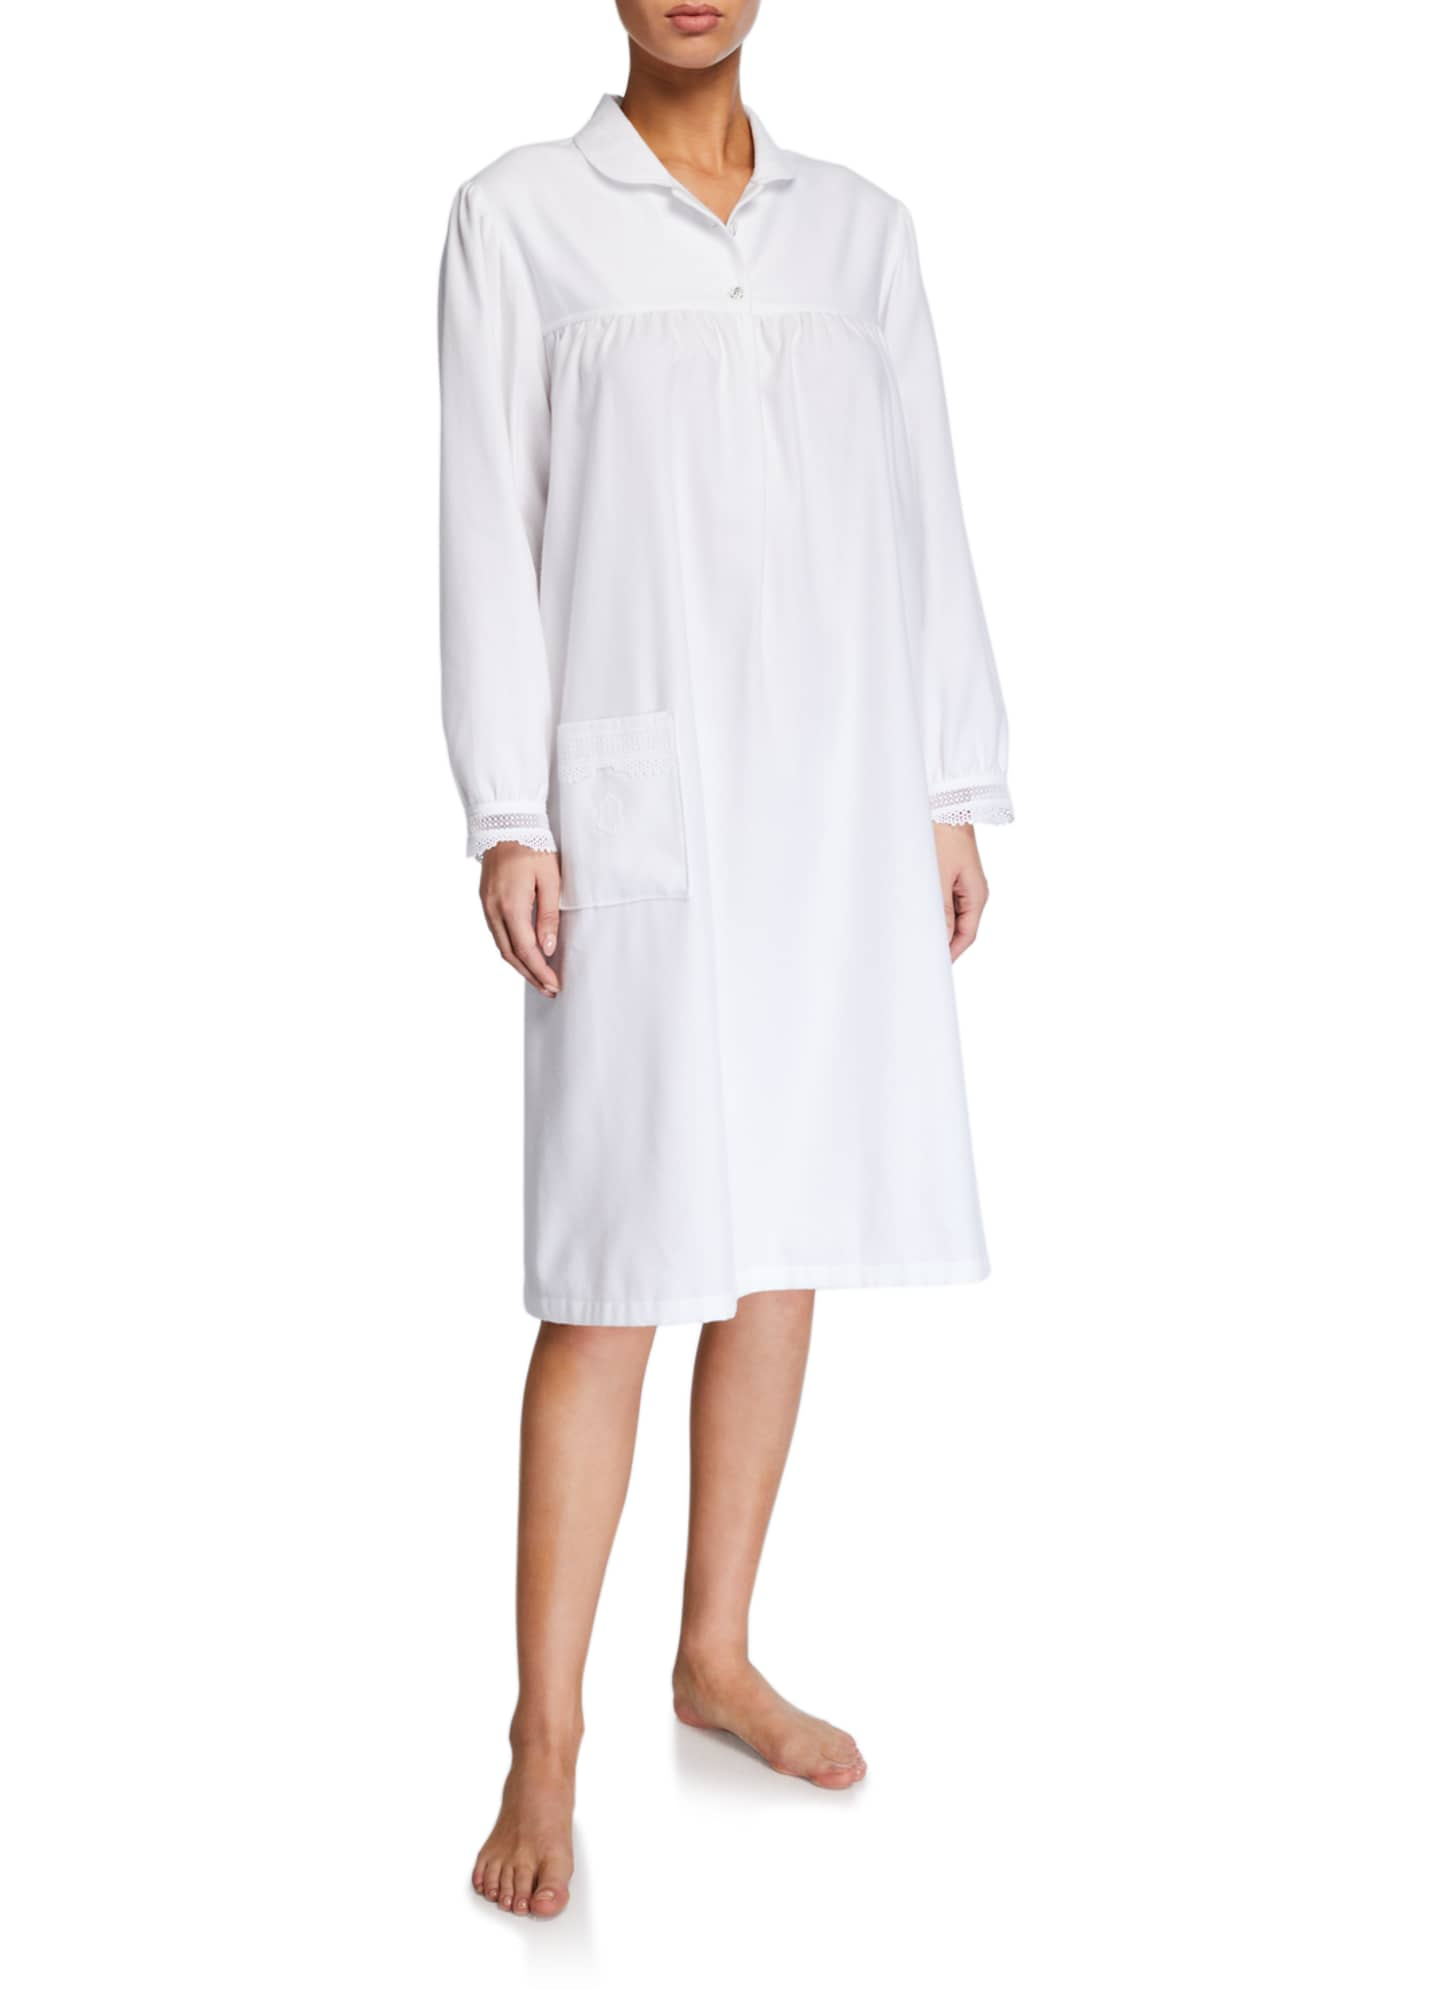 Celestine Sara Long-Sleeve Collared Nightgown